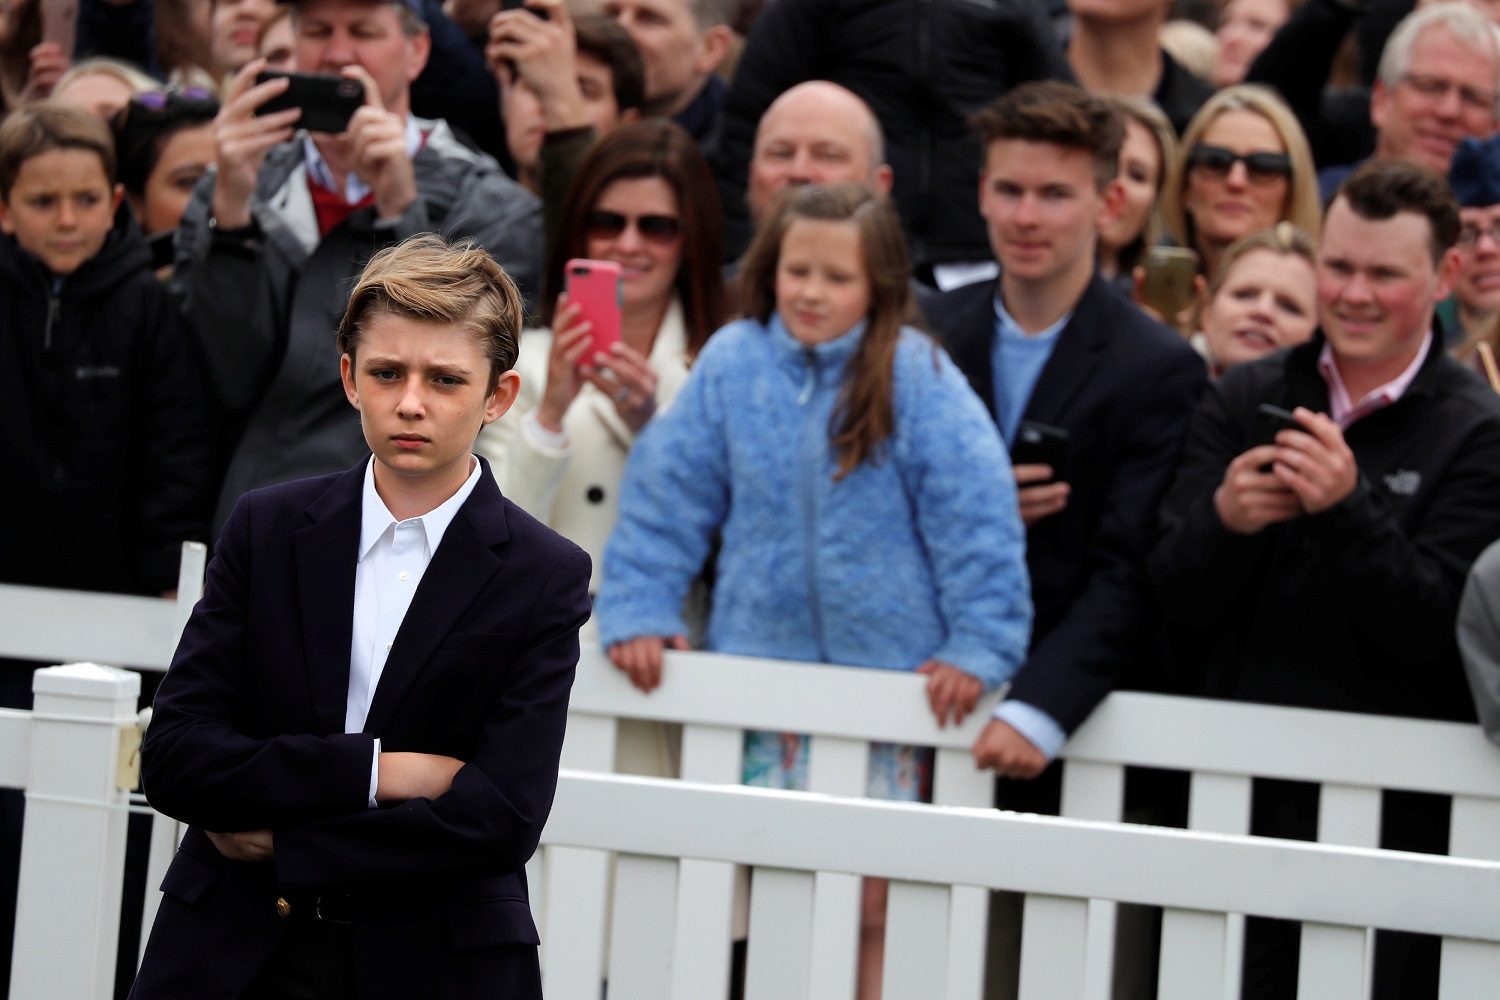 Barron Trump attends the annual White House Easter Egg Roll event on the South Lawn of the White House in Washington, U.S., April 2, 2018. REUTERS/Carlos Barria